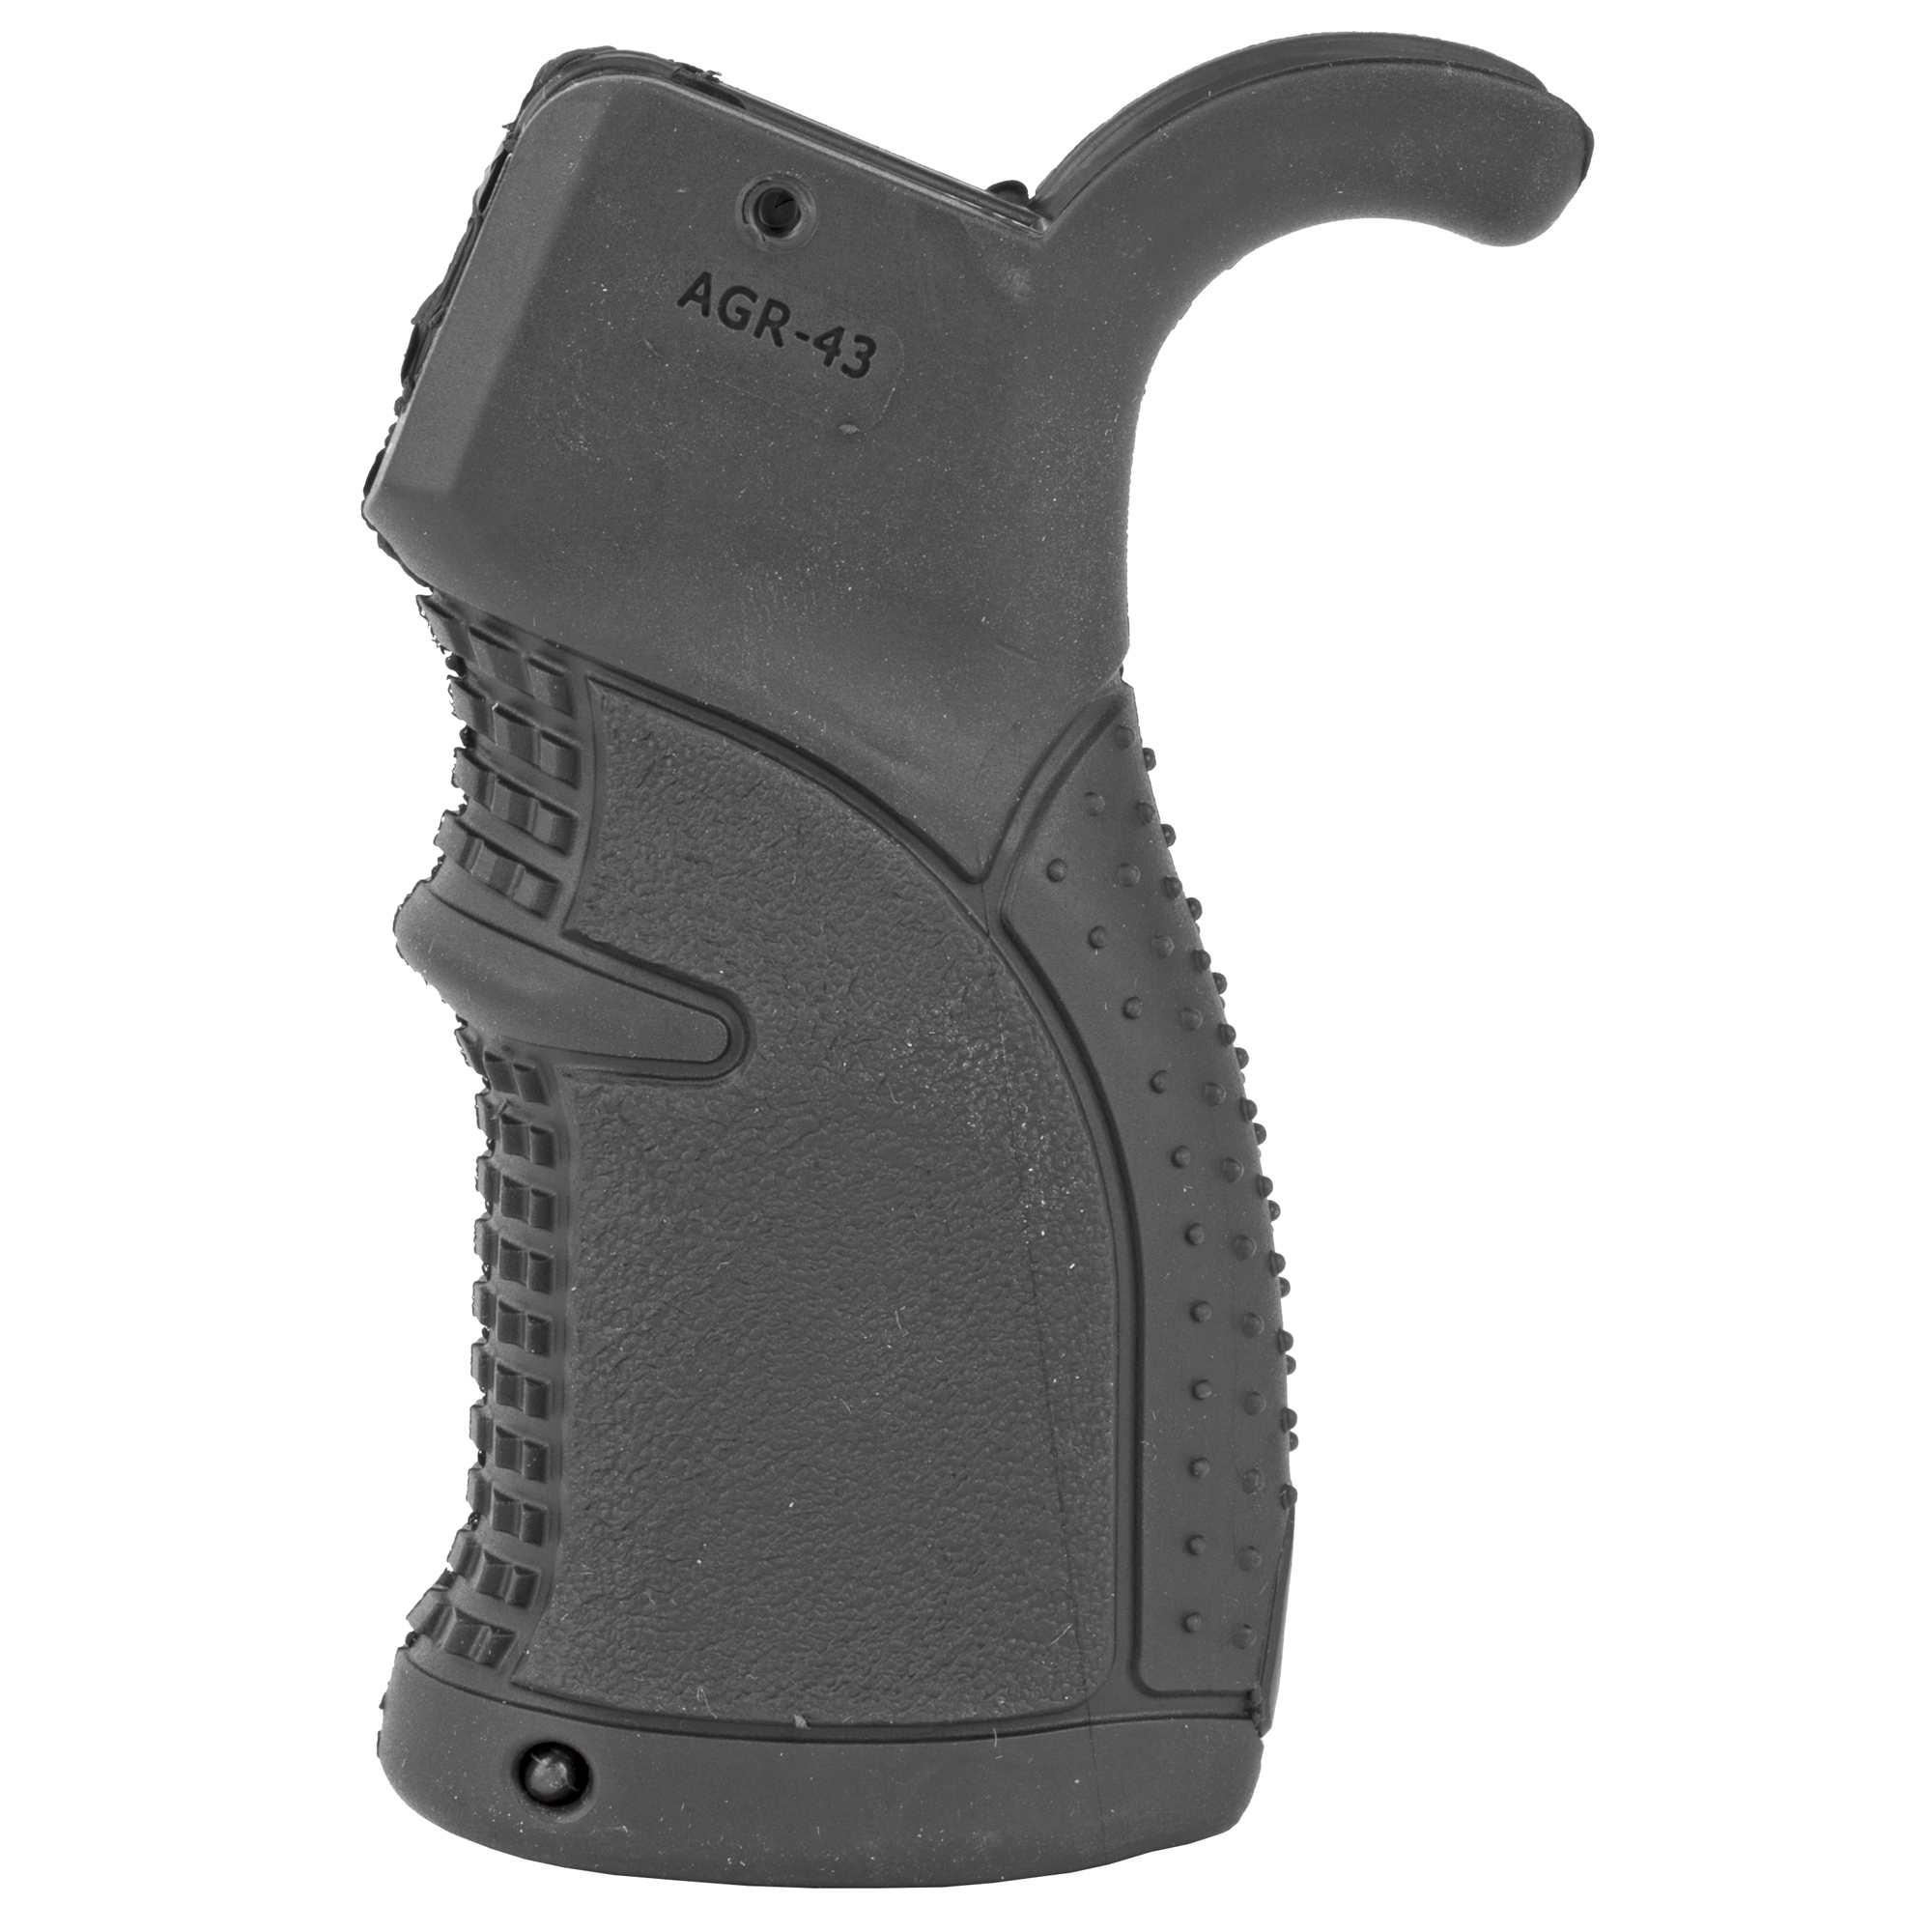 "The AGR-43 is the latest addition to their line of pistol grips featuring multi-textured rubber"" enhancing your grip experience. Incorporated into its design"" is the superior contour of its predecessor"" adding even more comfort and proper ventilation needed in extreme heat and moist environments"" giving you the edge you need in the field or at the range. It is constructed from MIL-SPEC reinforced polymer composite with muti-textured rubber overmold superior coating and has three different overmold rubber textures; rib studded at palm"" alligator pattern for front fingers and moon surface textured sides."